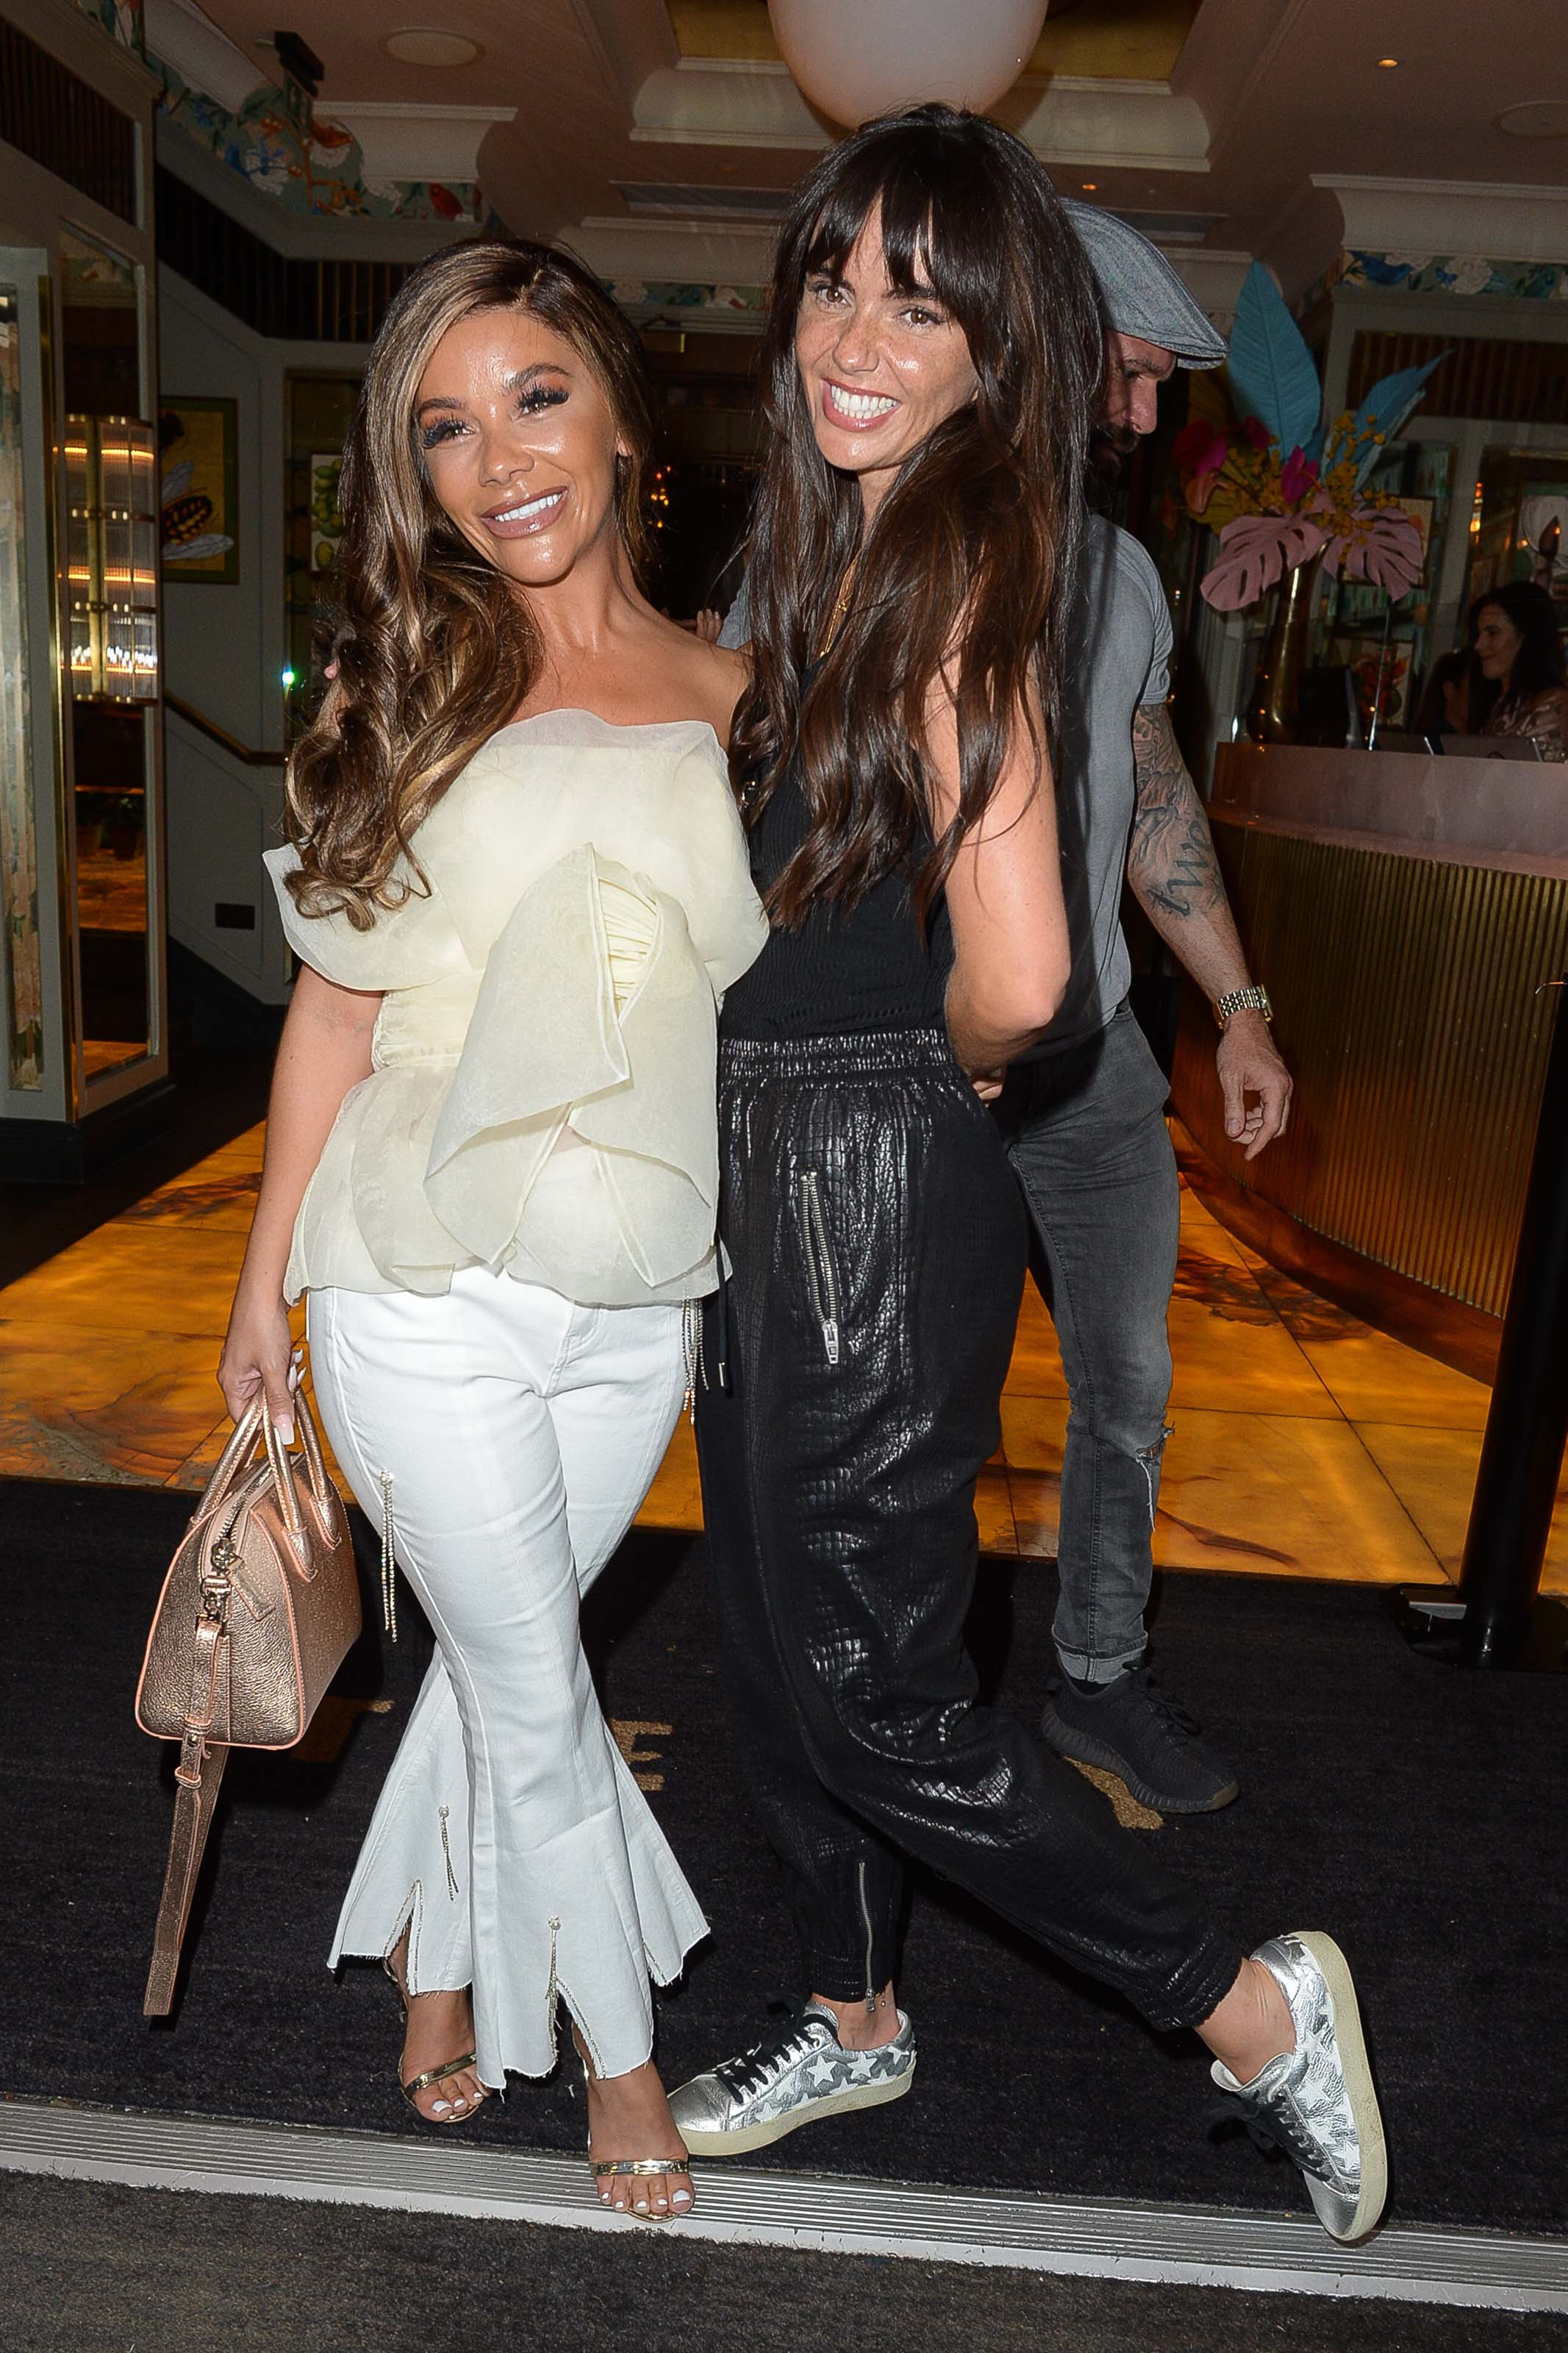 Jennifer Metcalfe at The Ivy for Chelsee Healey's birthday